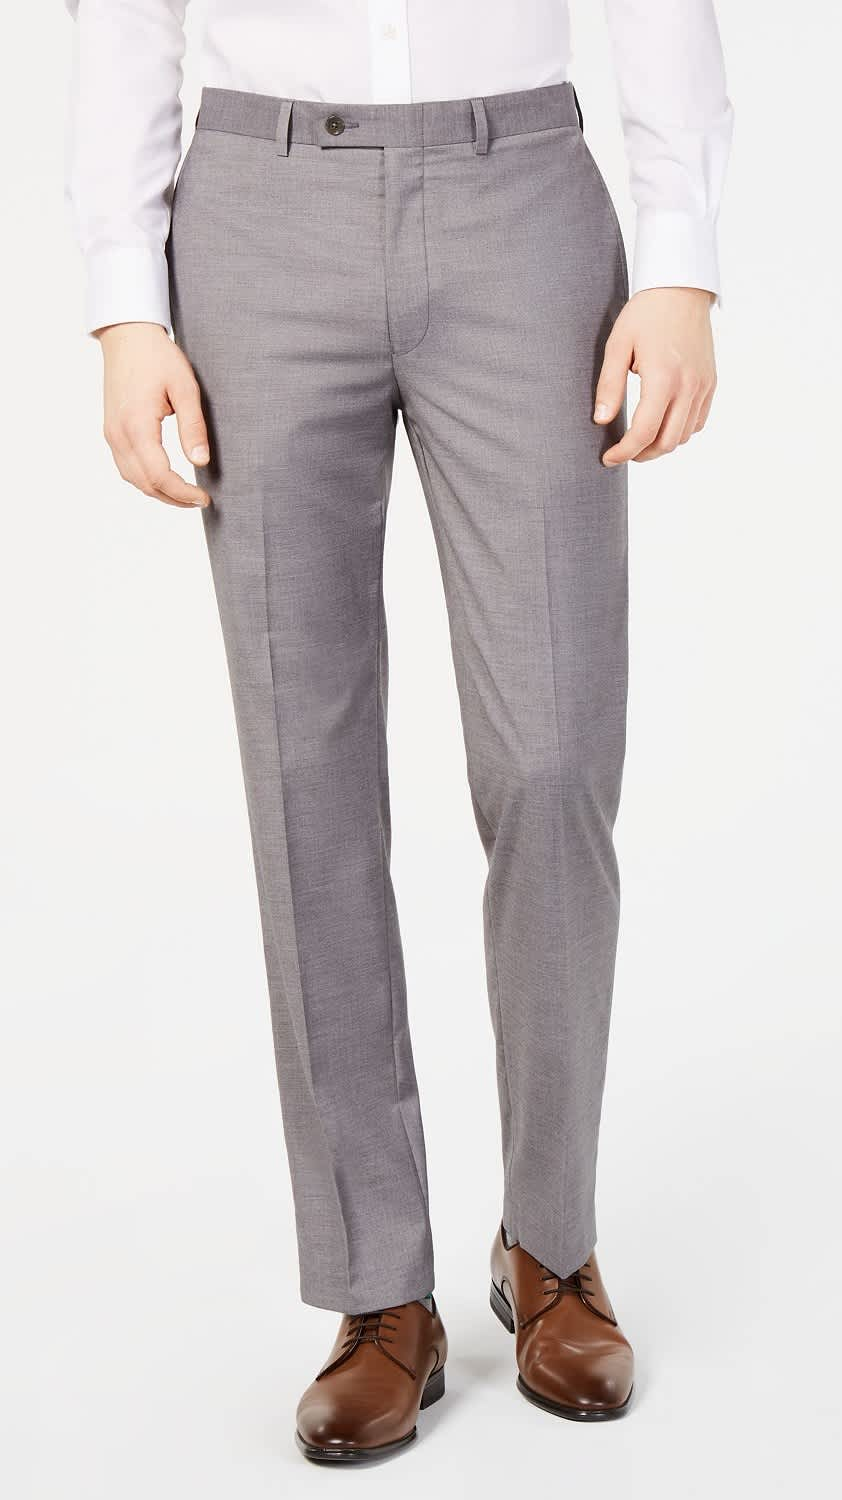 Calvin Klein Men's Slim-Fit Wrinkle-Resistant Dress Pants